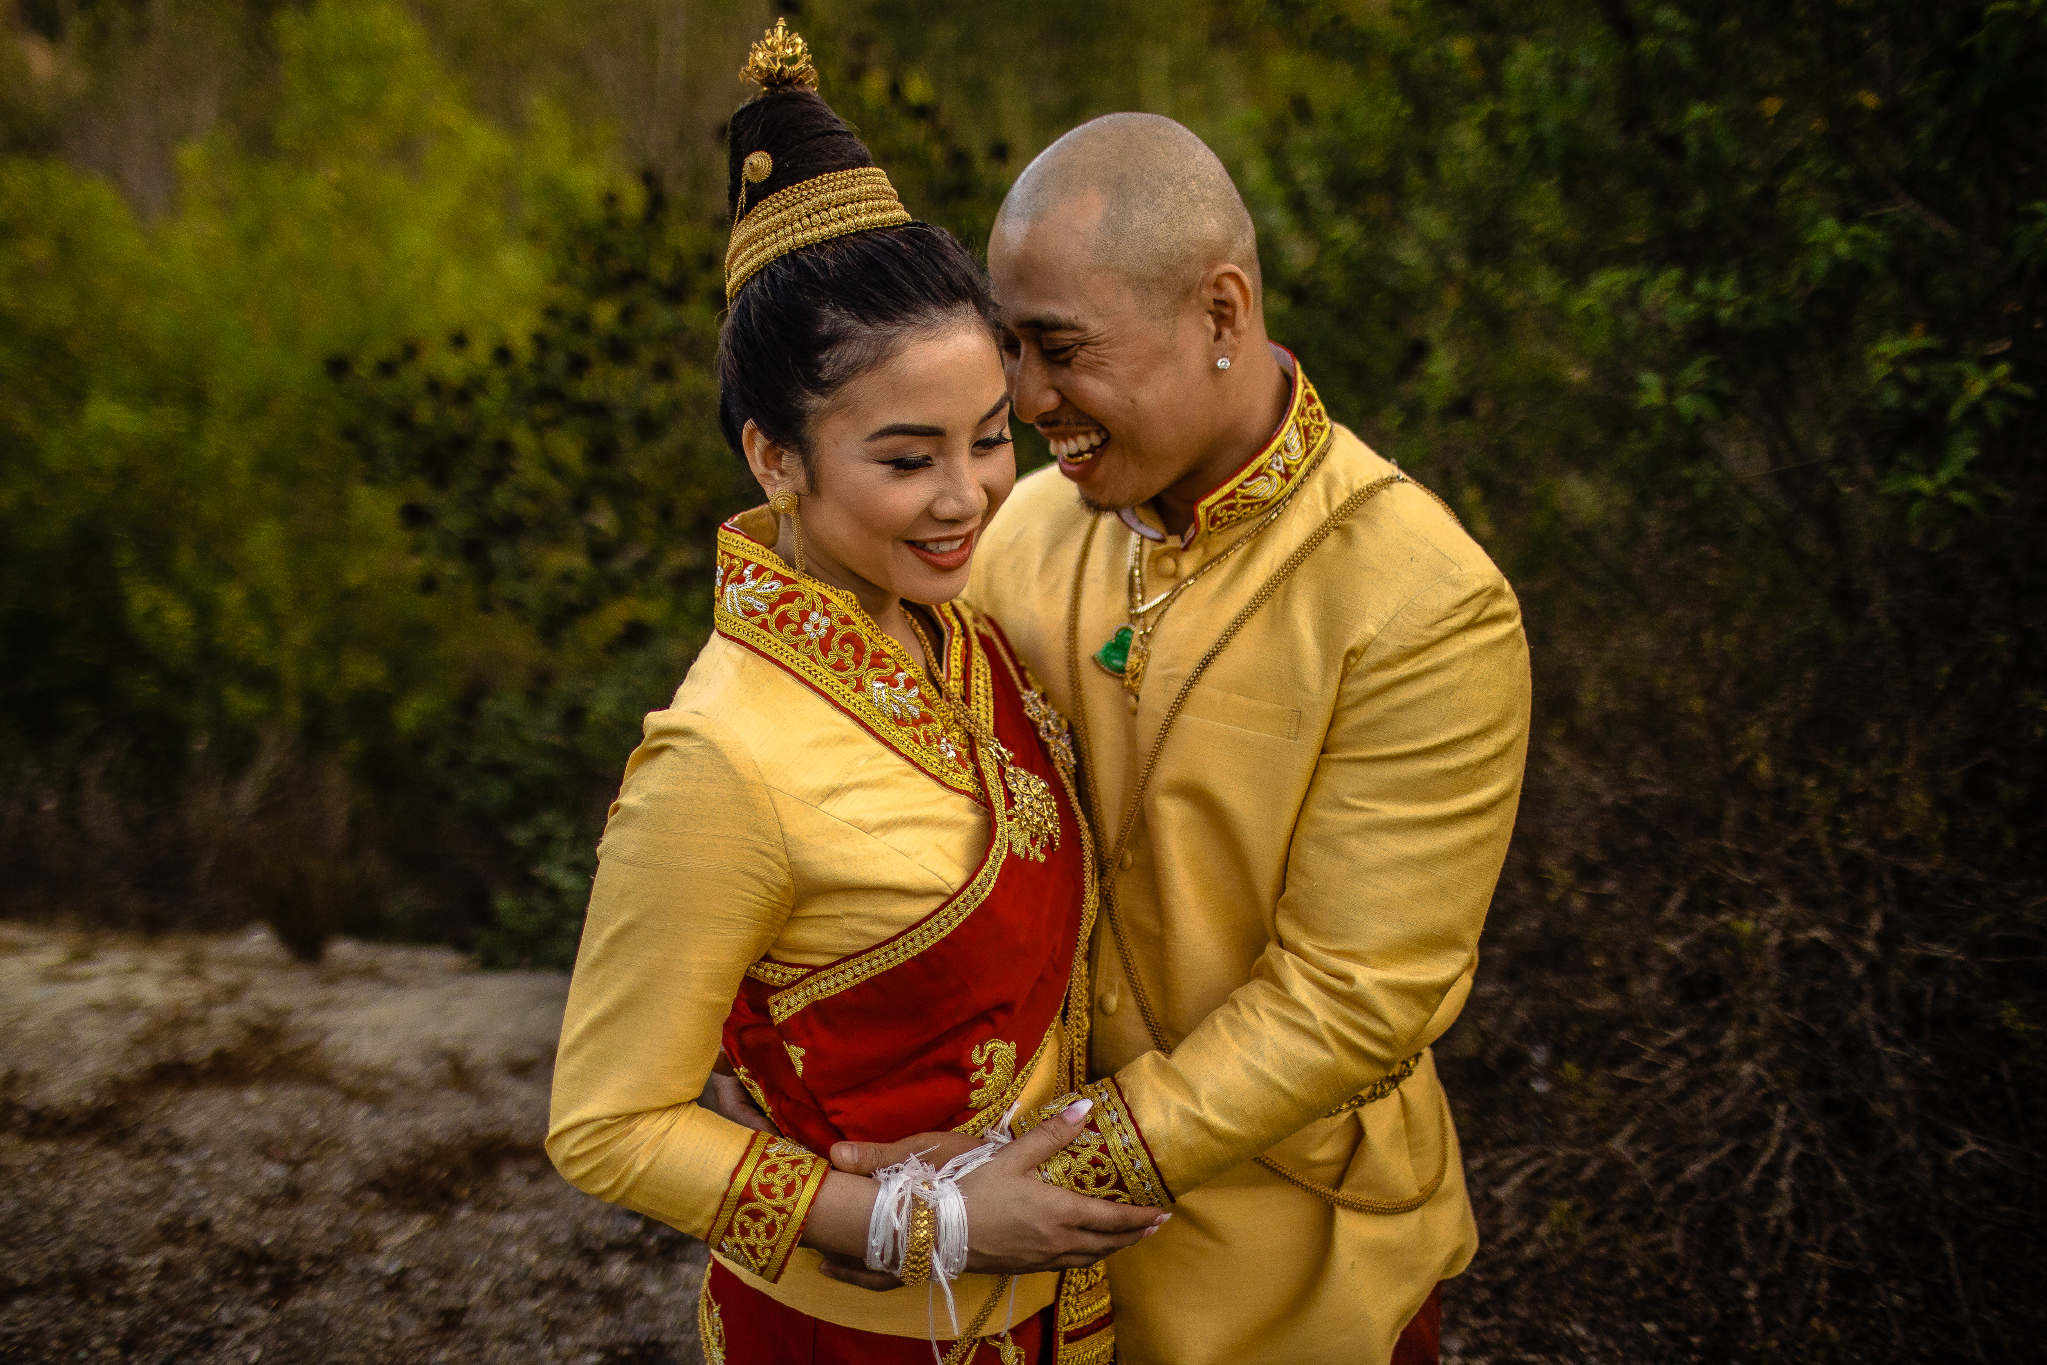 san diego wedding   photographer | couple wearing traditional outfit